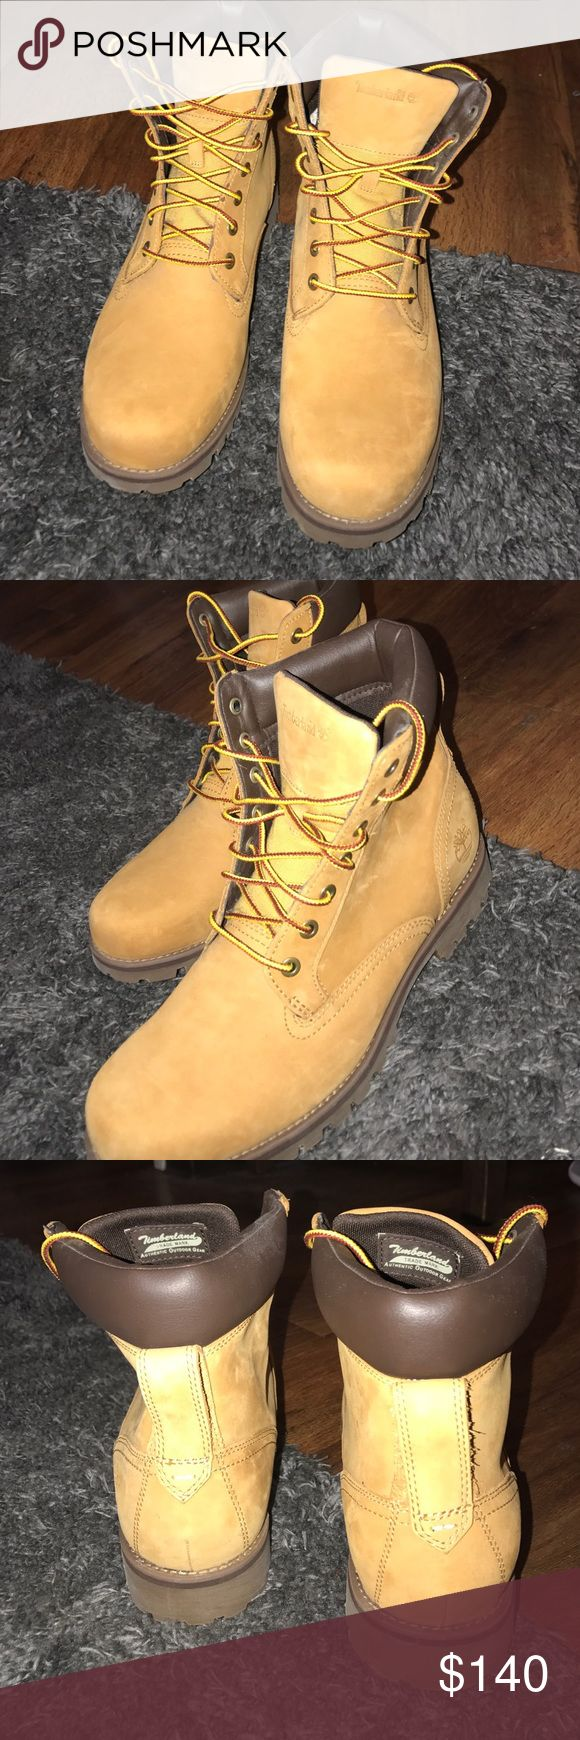 Men's Classic Timberland Boots/ Wheat Nubuck Never worn, excellent condition. Timberland Shoes Boots